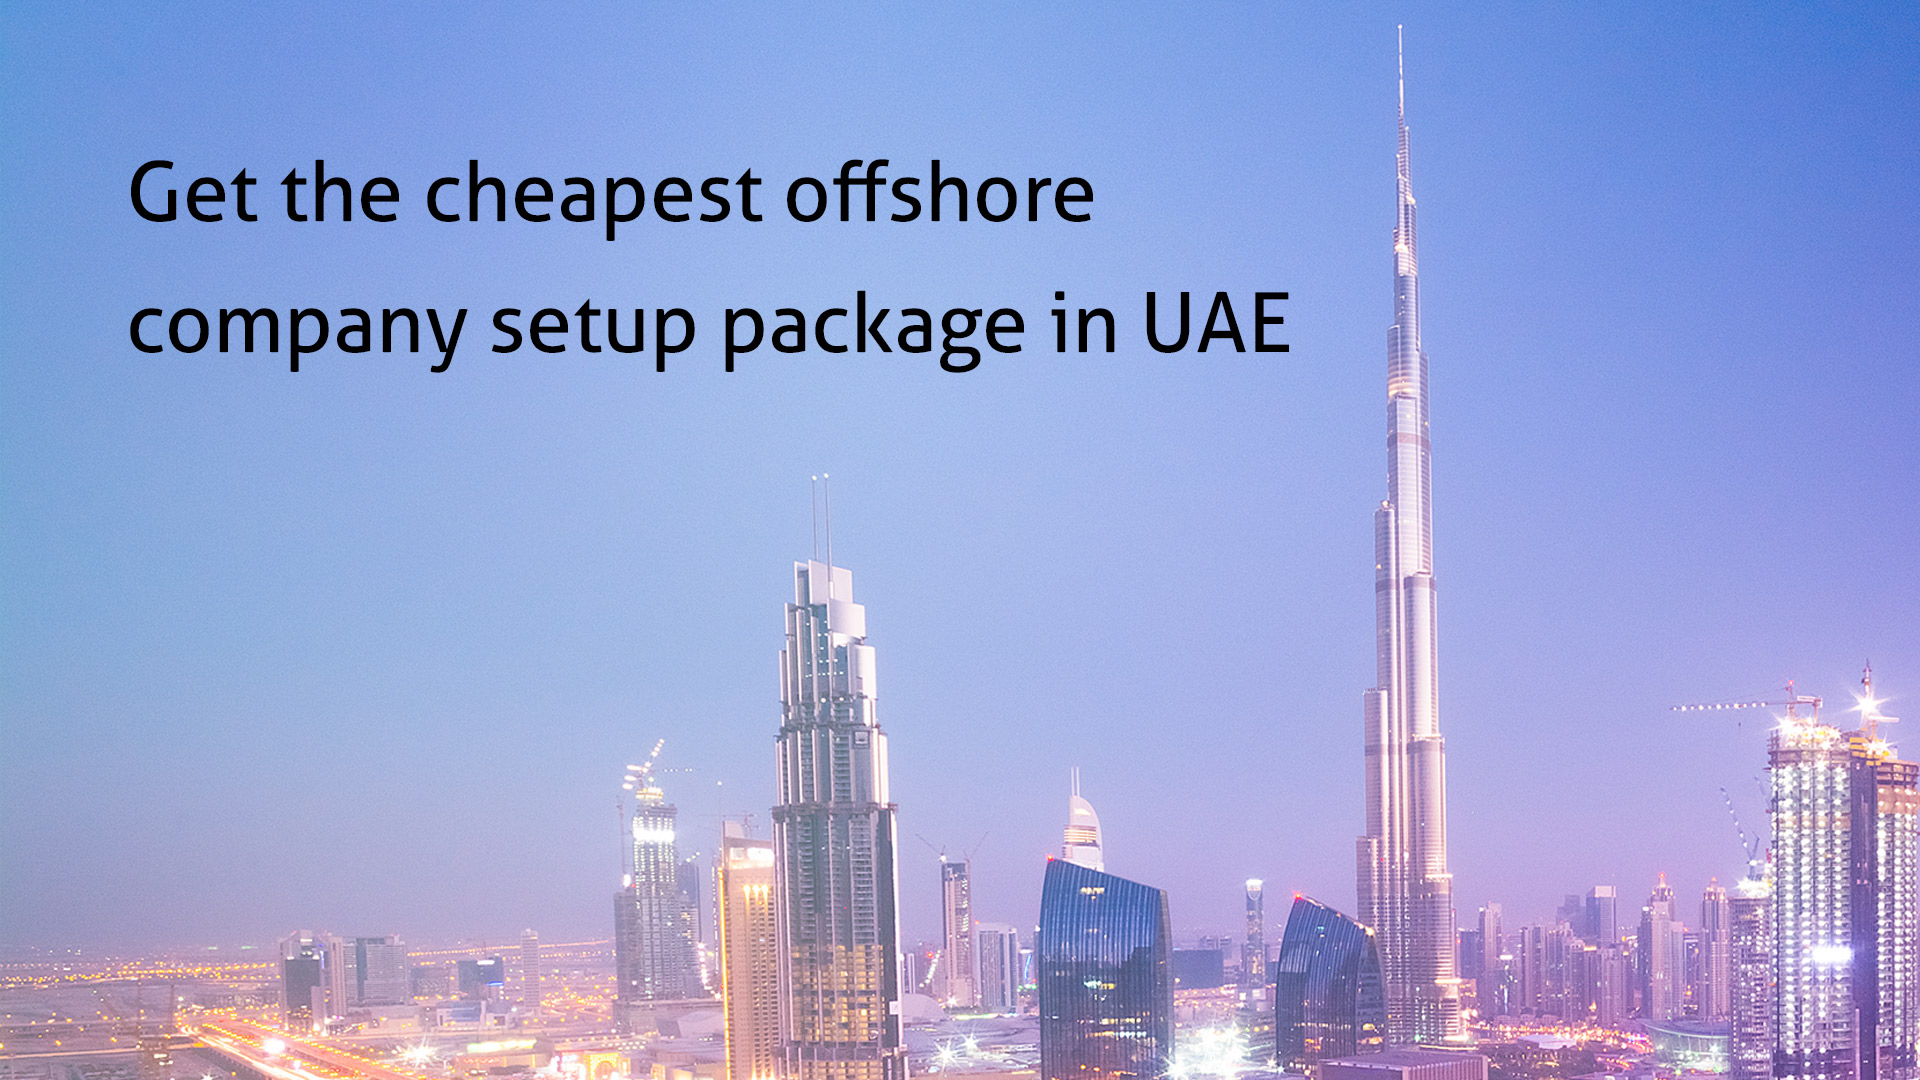 Get the cheapest offshore company setup package in UAE